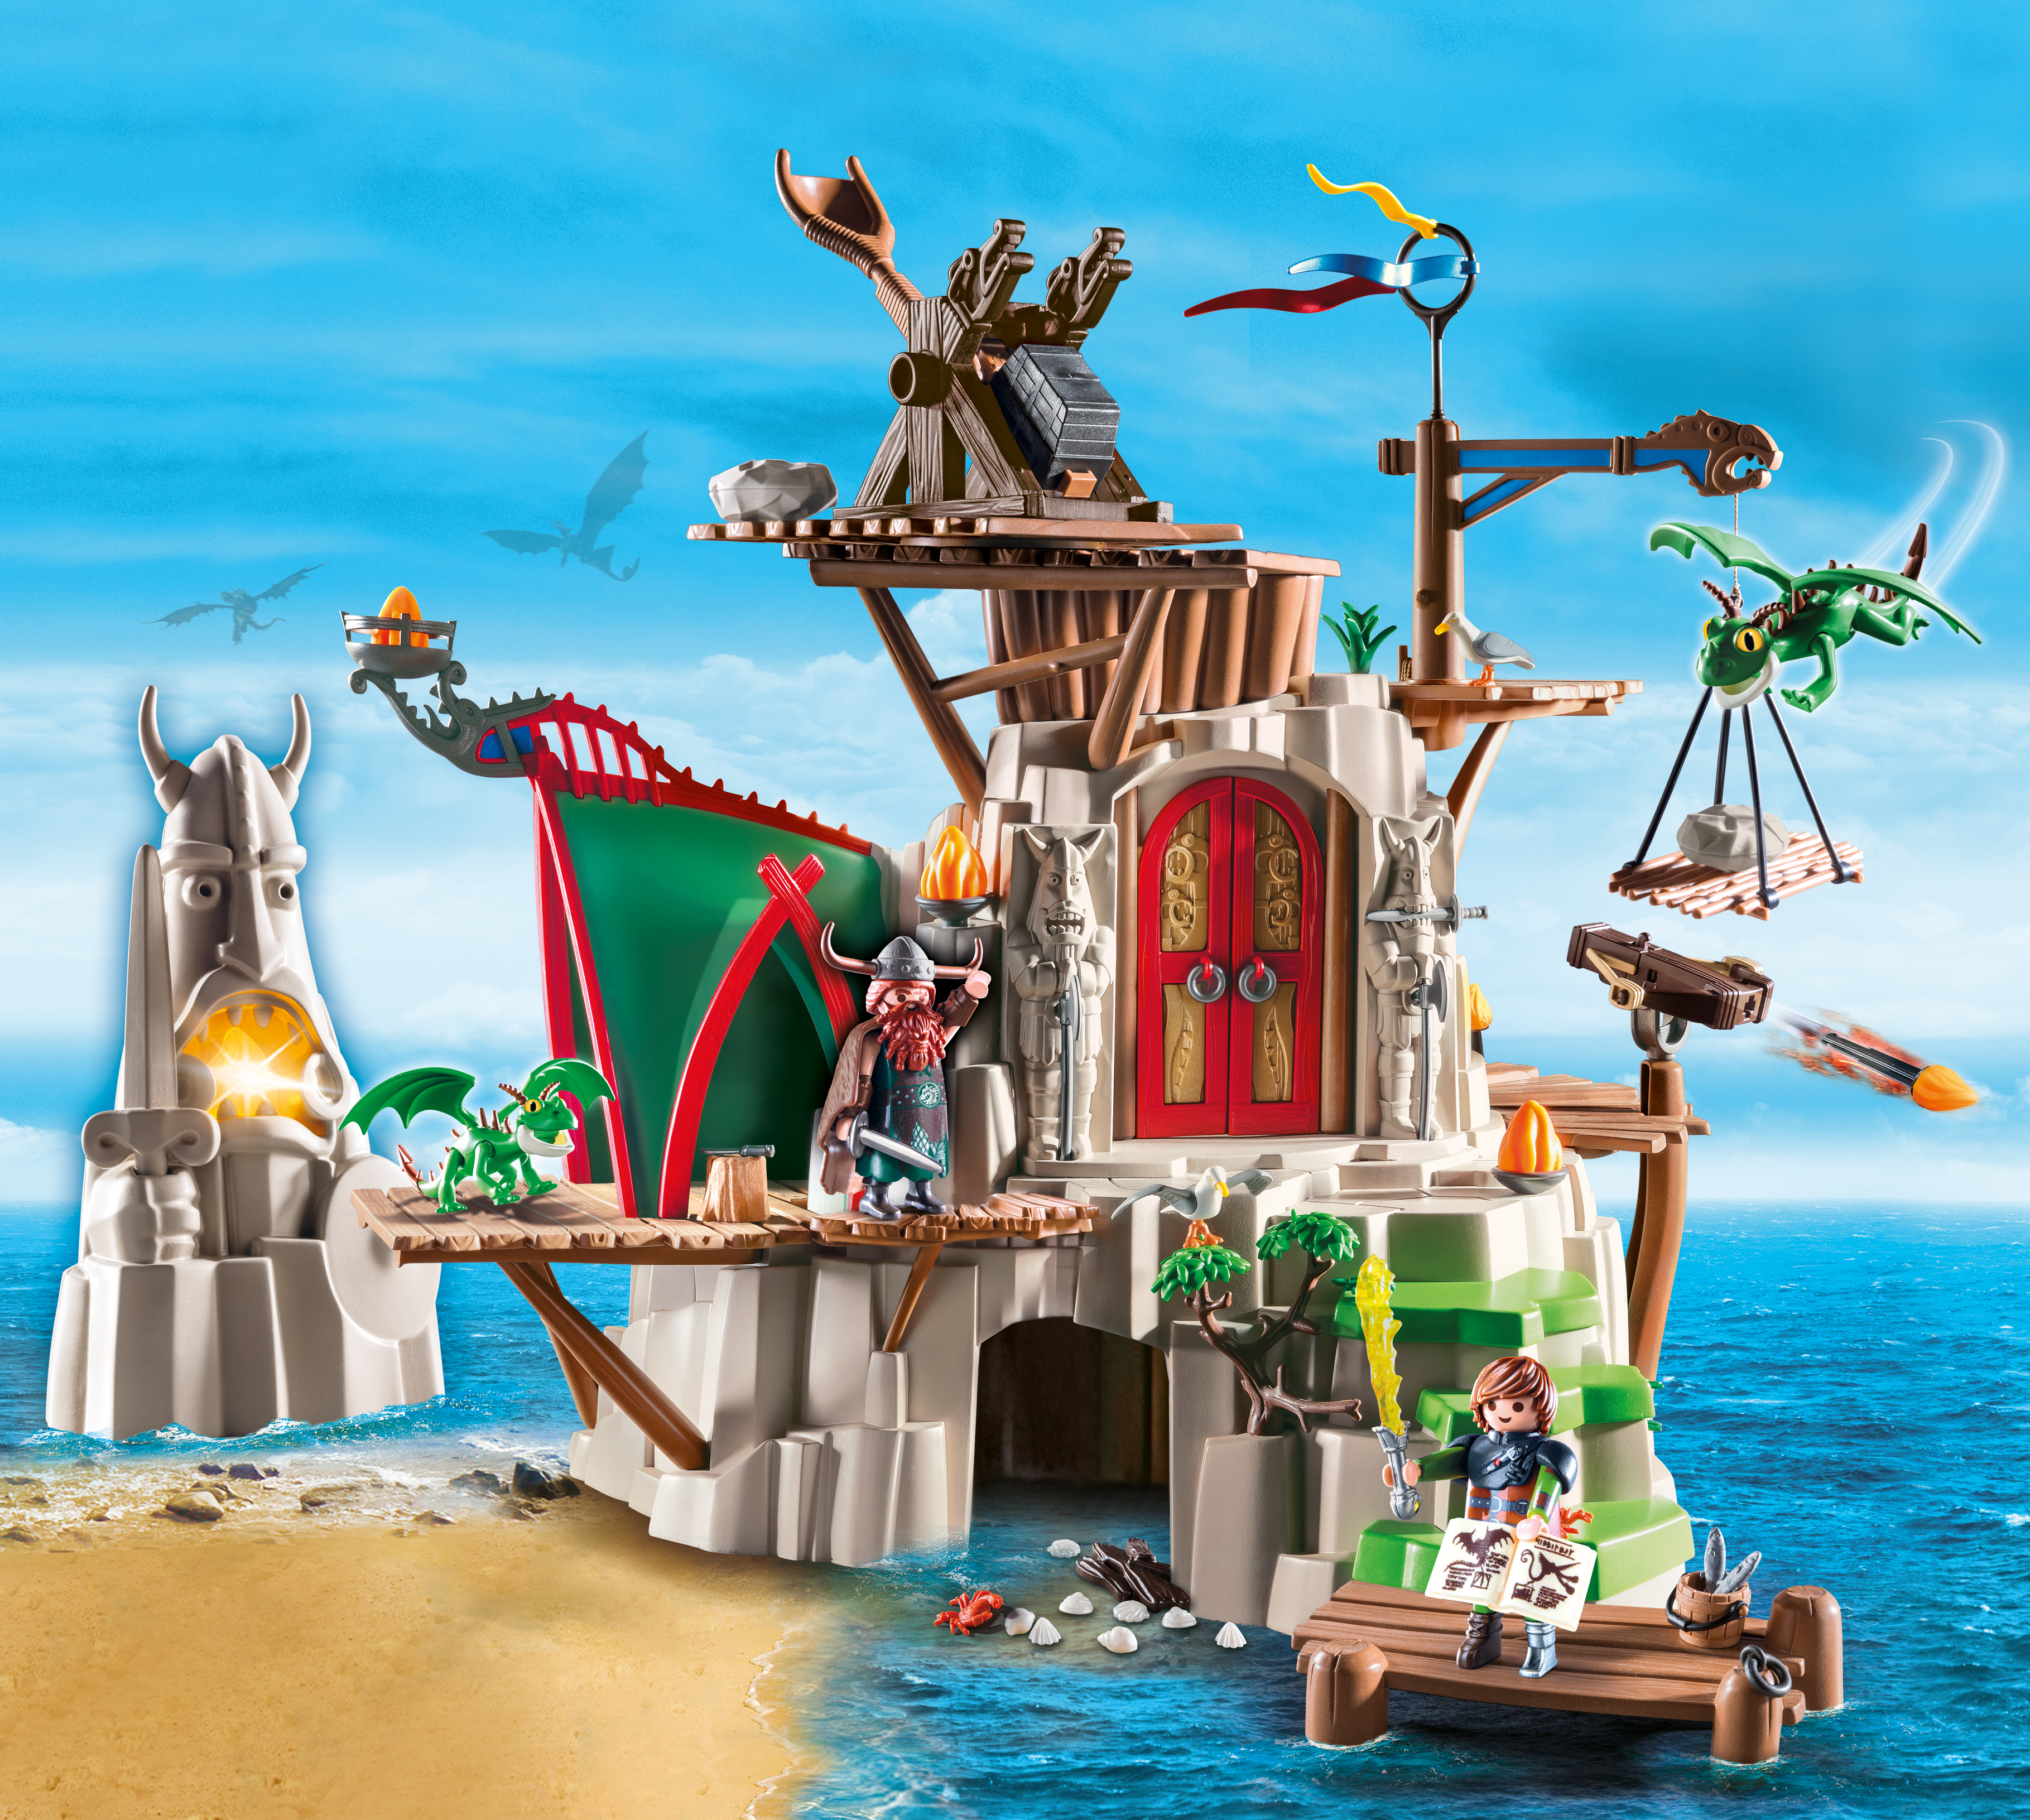 PLAYMOBIL HTTYD DRAGON KNIGHT FORTRESS PLAY-SET